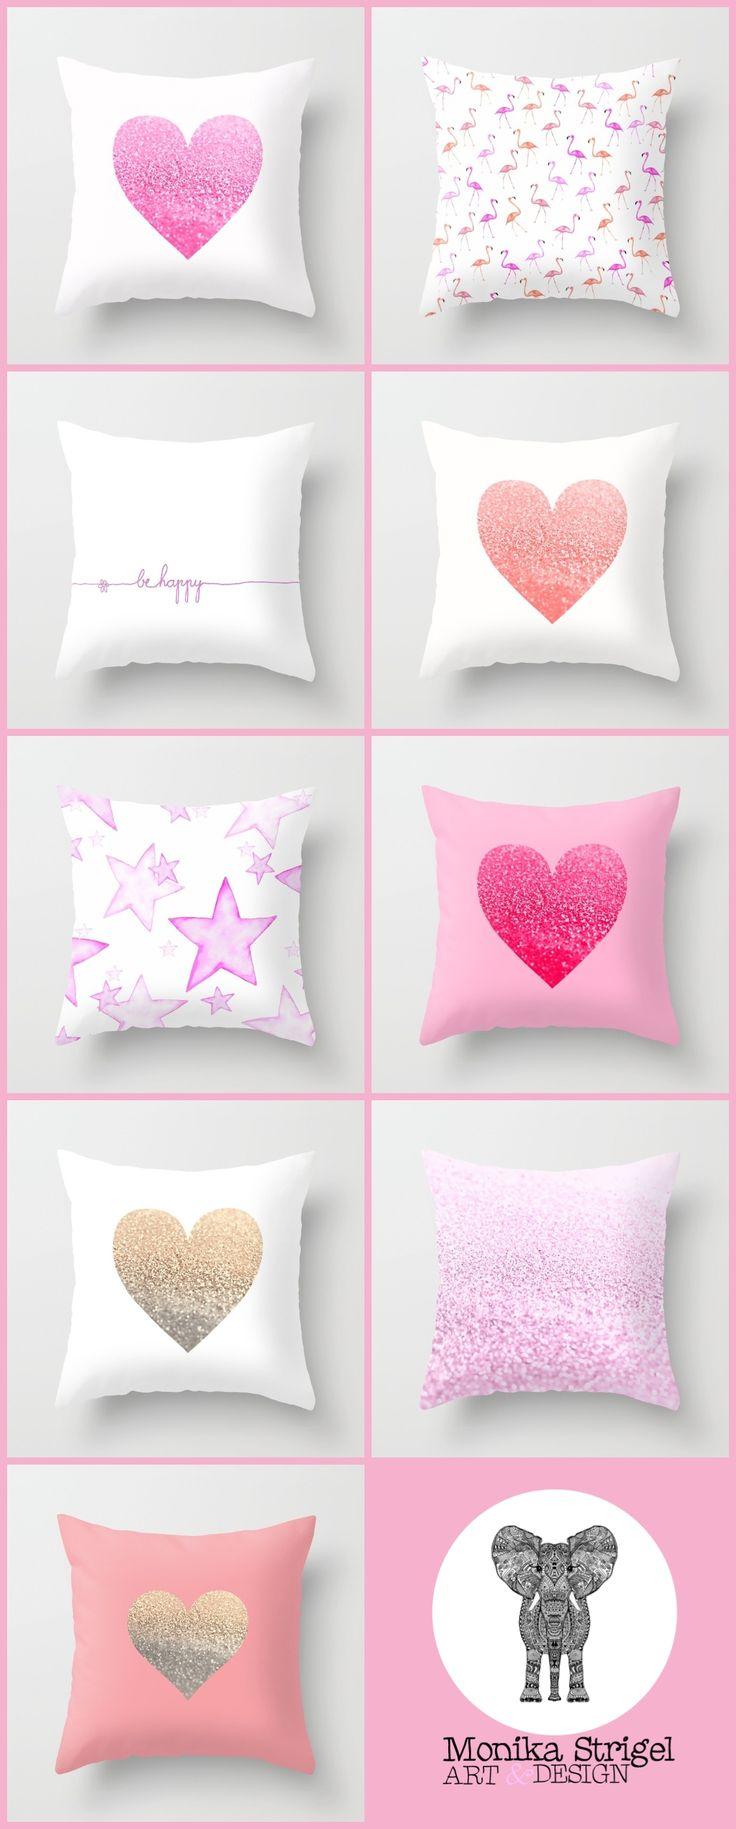 THE MIX & MATCH PINK PILLOW COLLECTION by Monika Strigel - Society6 #pink #softpink #hotpink #pillow #throwpillow #cover #cushion #heart #flamingo #happy #stars #glitter #coral #monikastrigel